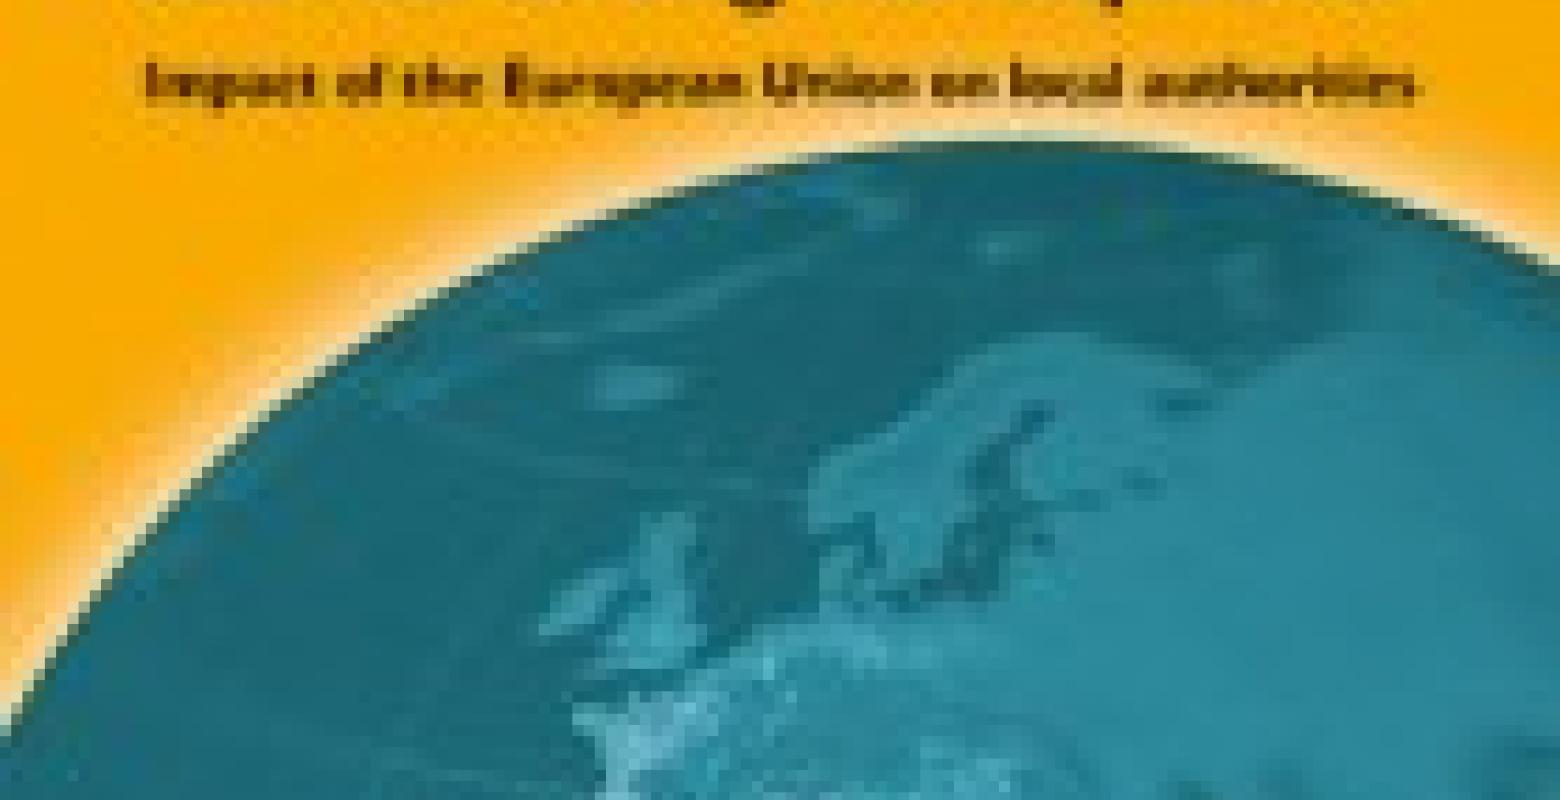 Titelseite Band 20:The future of Europe – built on strong municipalities: Impact of the European Union on local authorities